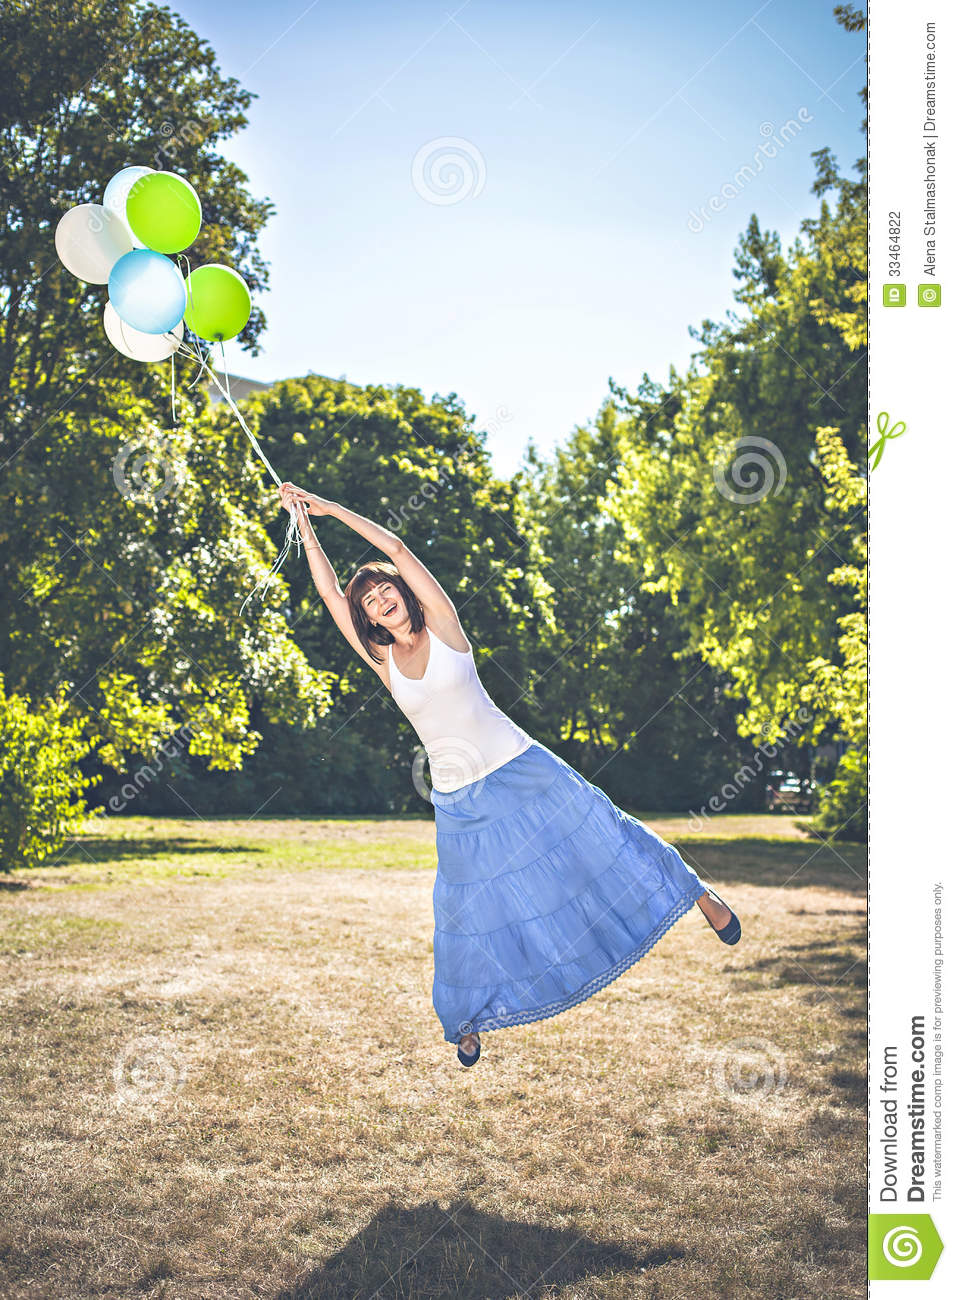 Flying Away With Balloons Stock Photo. Image Of Enjoyment ...